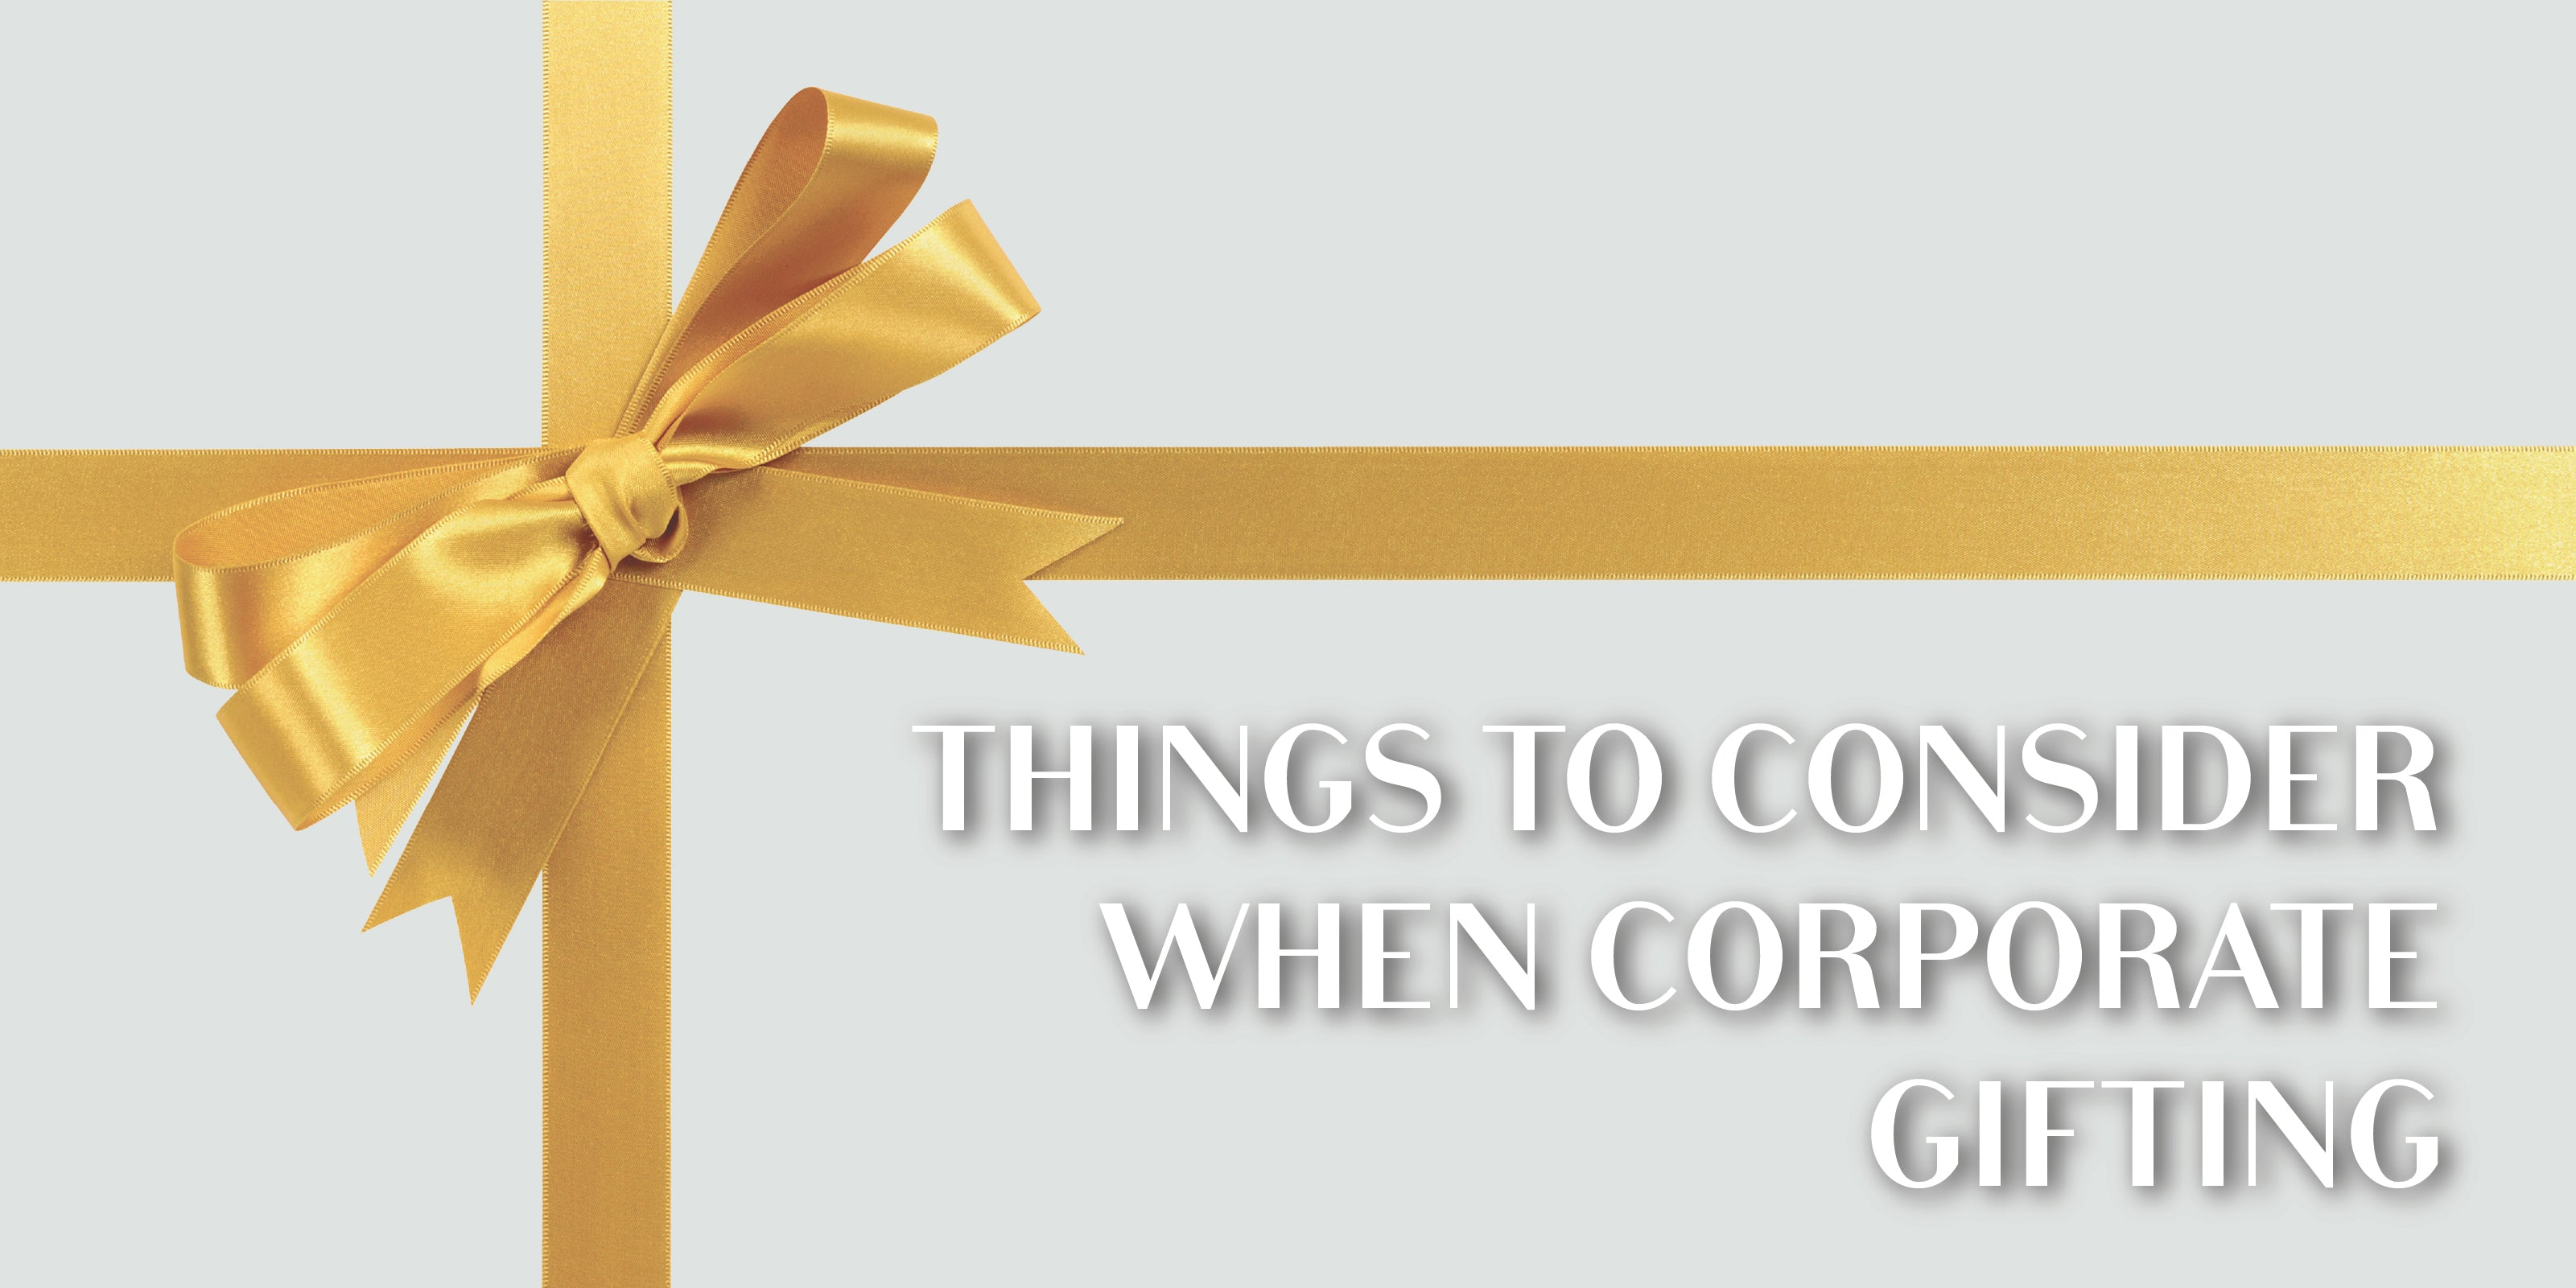 Things to consider when corporate gifting image